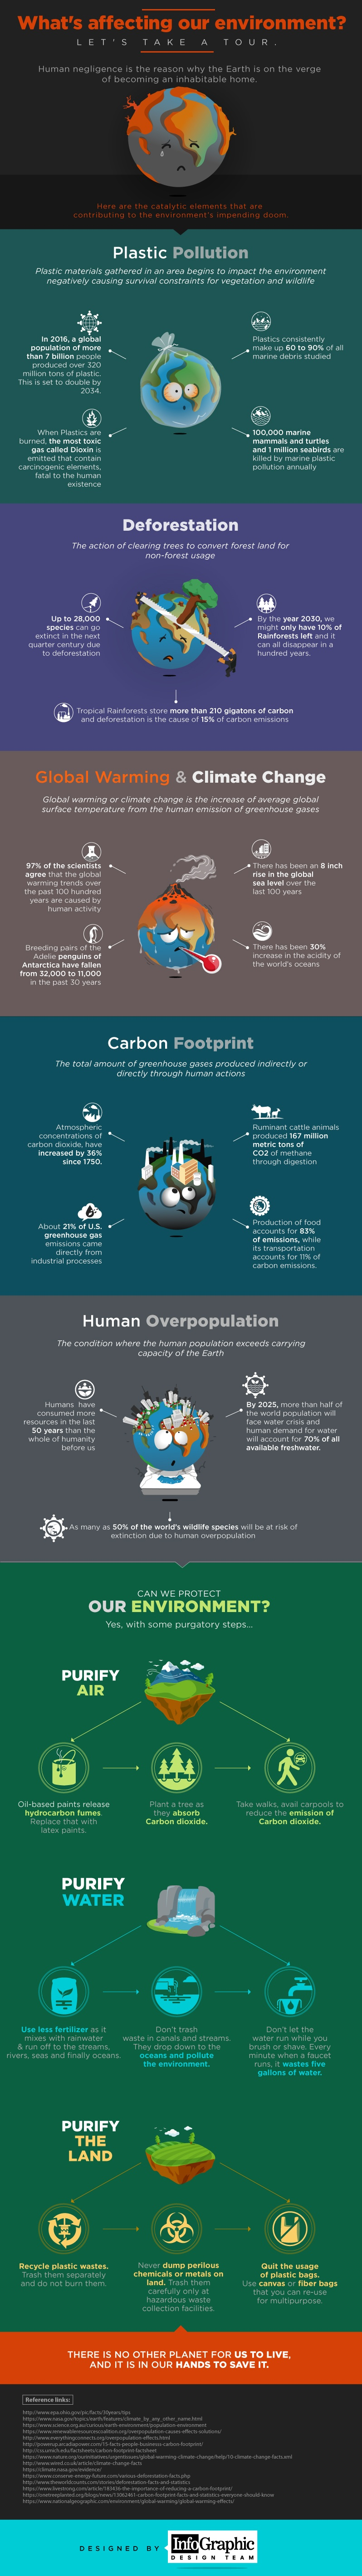 The Biggest Disaster Affecting Our Planet: Human Negligence - Infographic